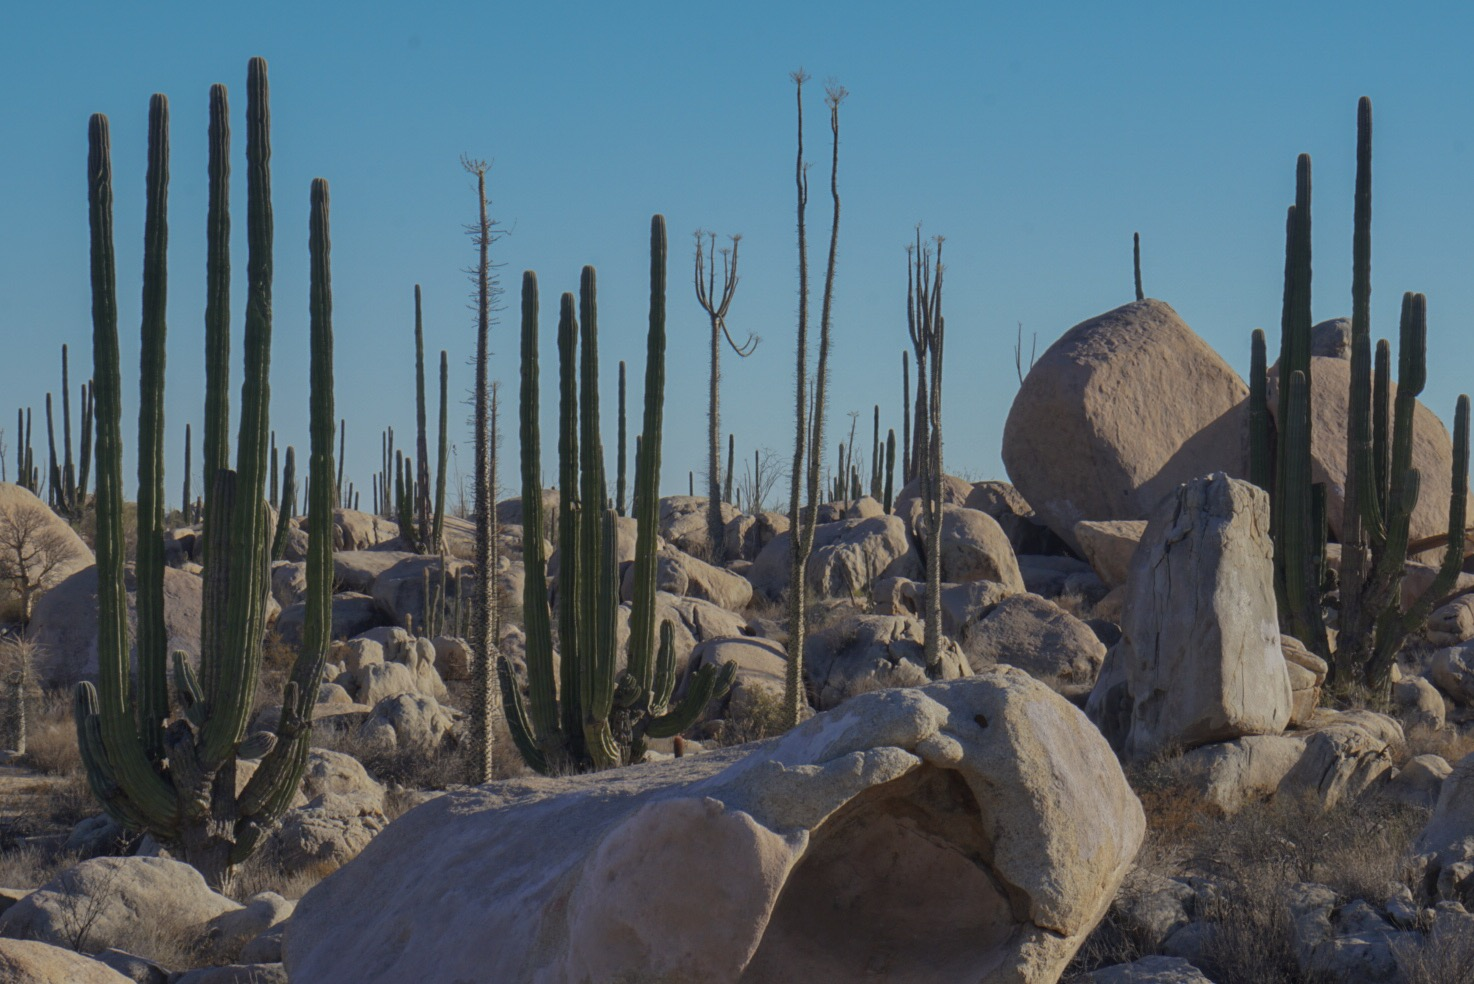 A distinctive biosphere in Baja